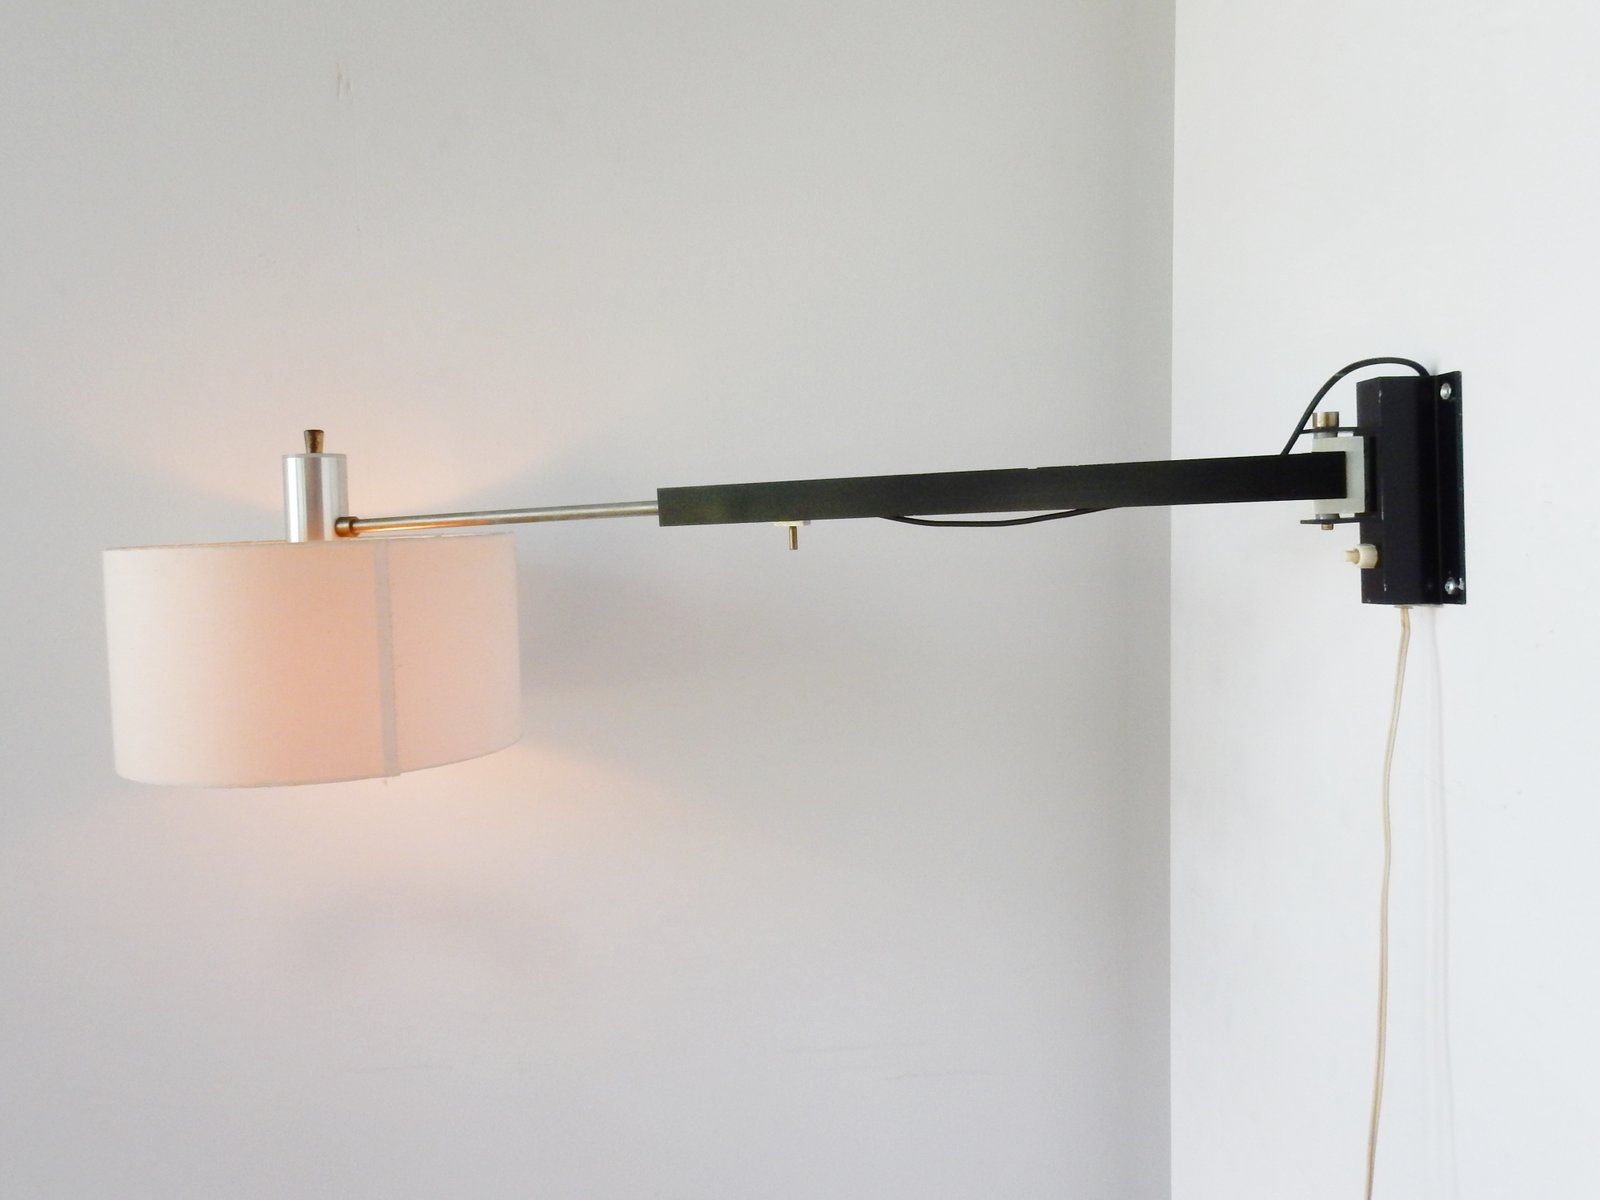 Uitschuifbare Wandlamp Vintage Extendable Swiveling Wall Lamp 1960s For Sale At